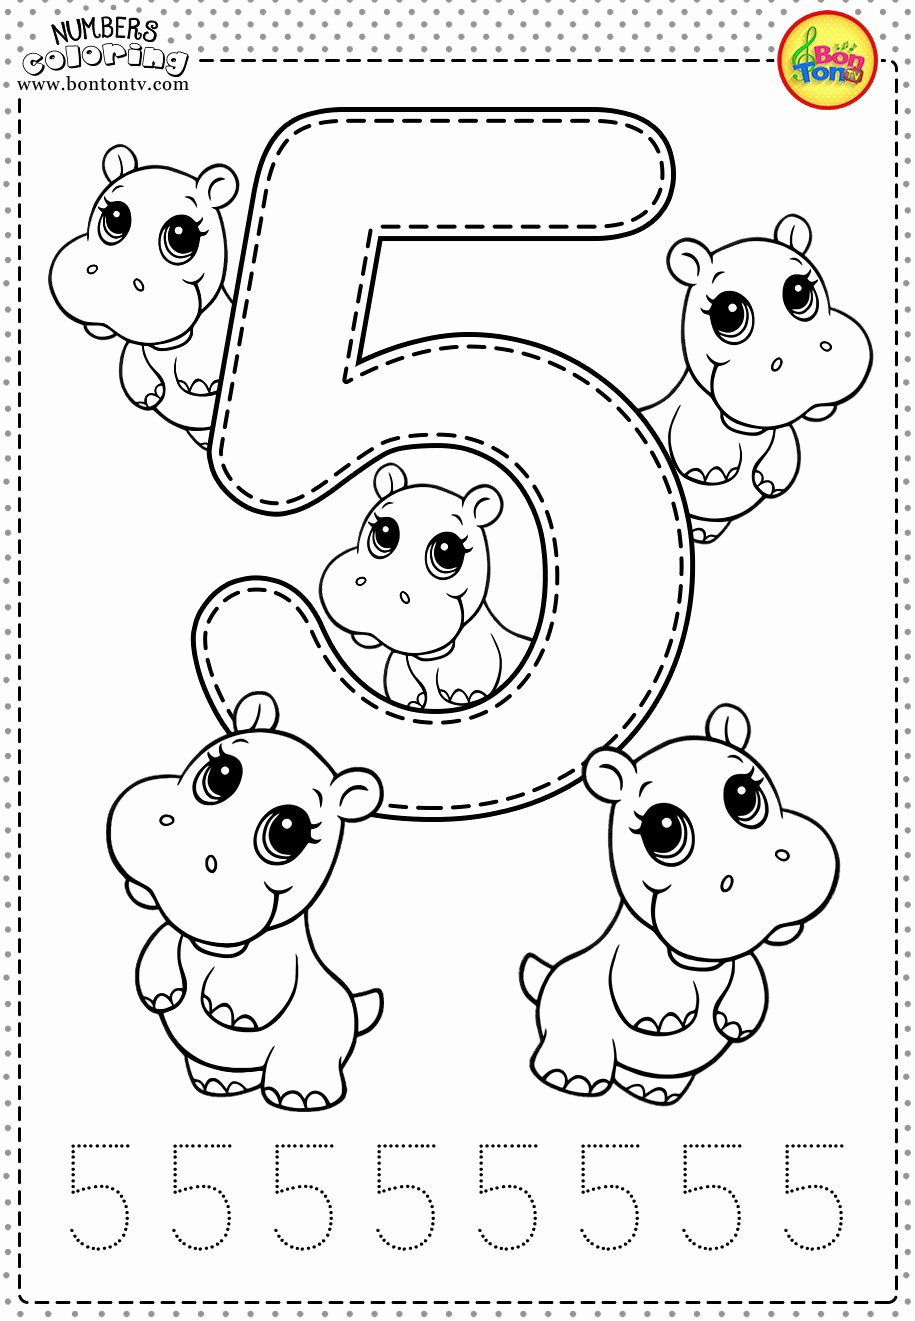 Cow Worksheets for Preschoolers Inspirational Worksheet Number for Kindergarten Tracing Preschool Numbers